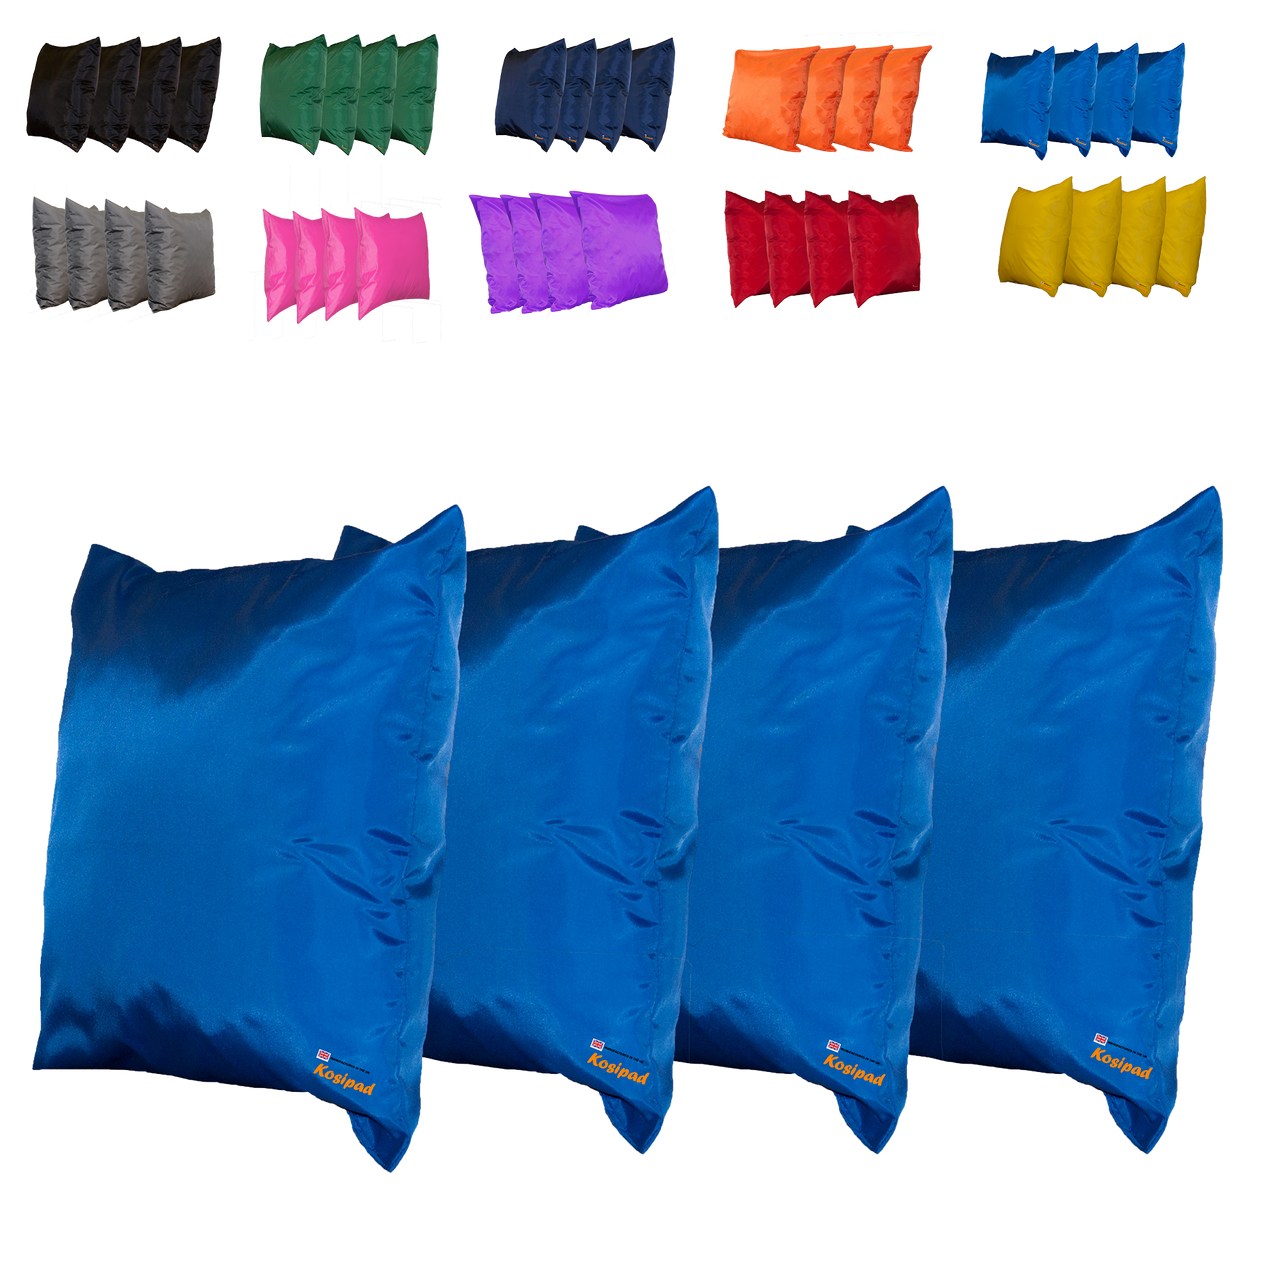 Kosipad Royal Blue Square waterproof cushions for outdoor furniture